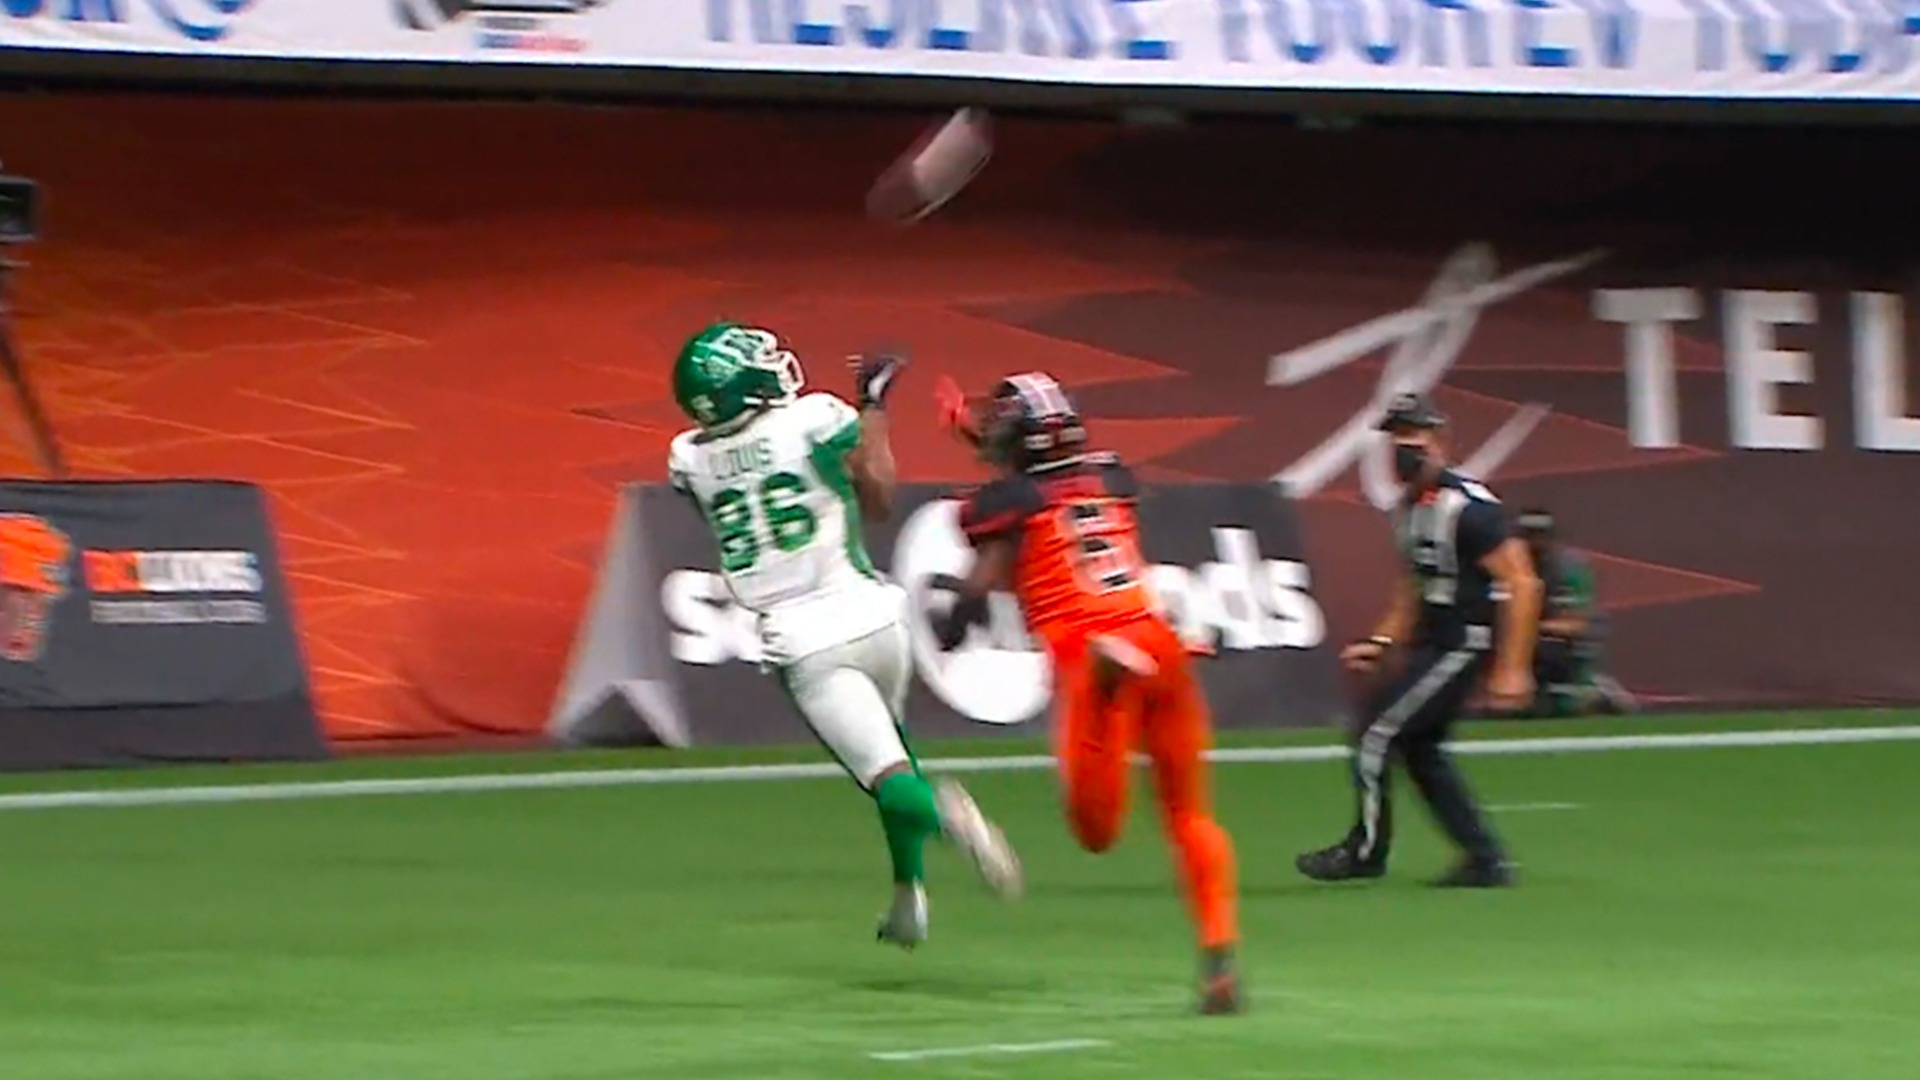 Louis' first CFL TD gives his team the lead